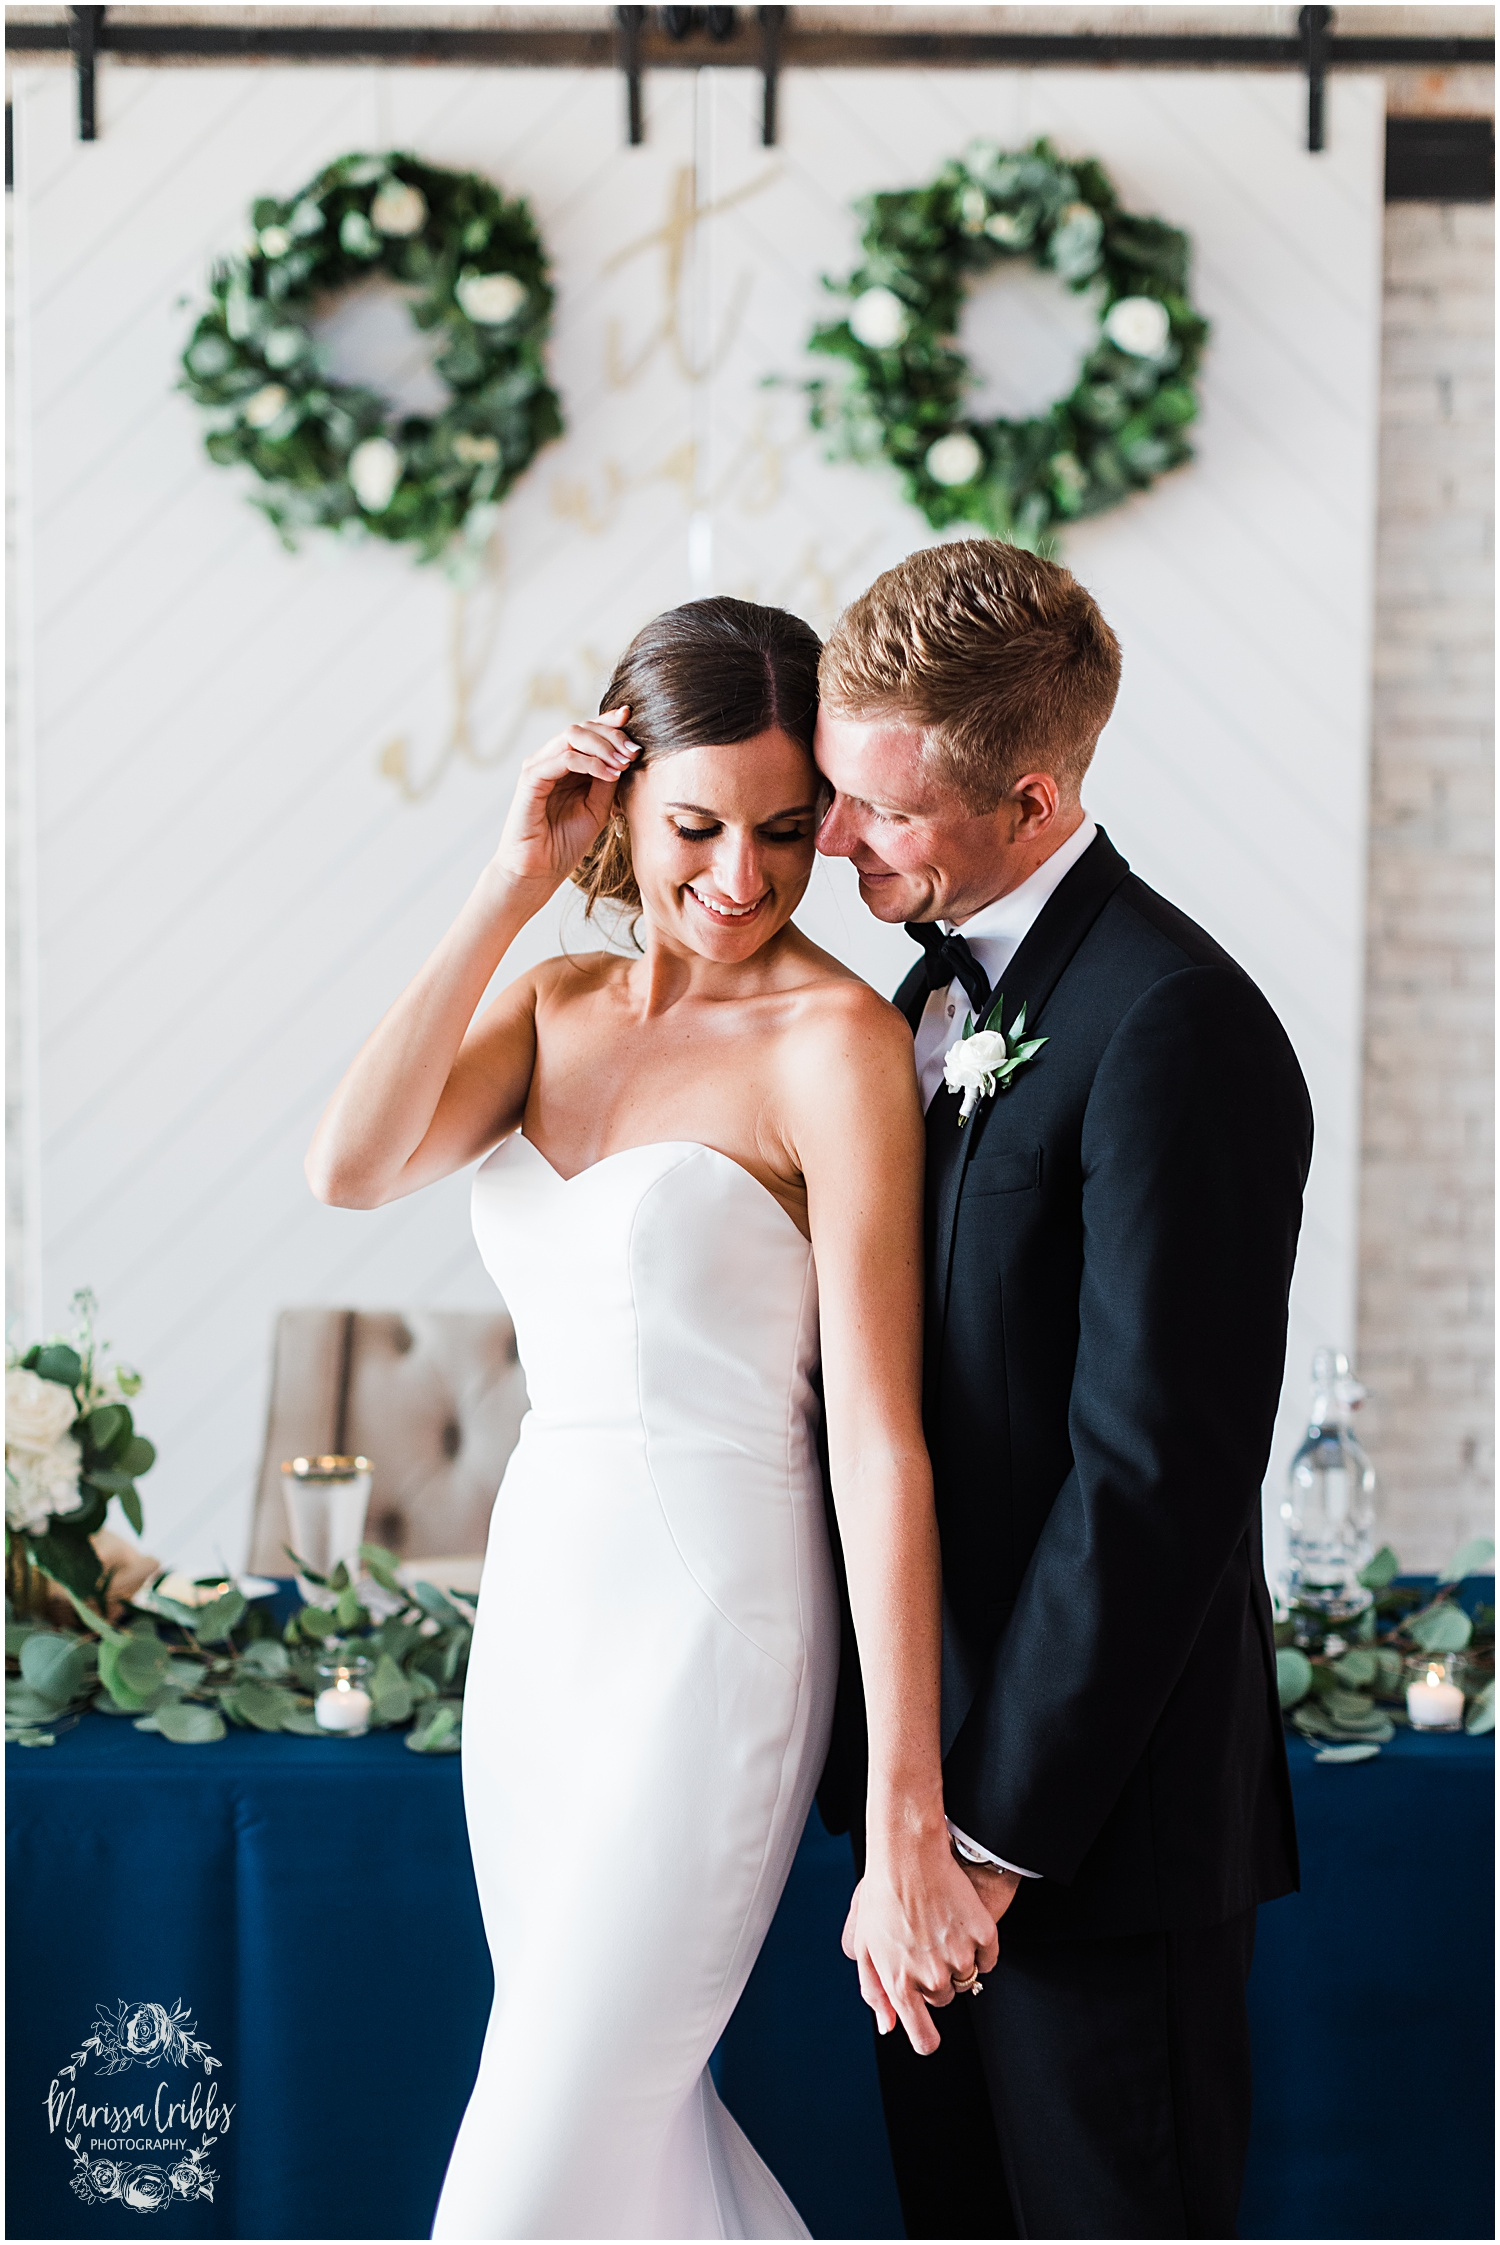 JOANNE & GEORGE MARRIED BLOG | MARISSA CRIBBS PHOTOGRAPHY | THE ABBOTT | KANSAS CITY WEDDING PHOTOS_9125.jpg